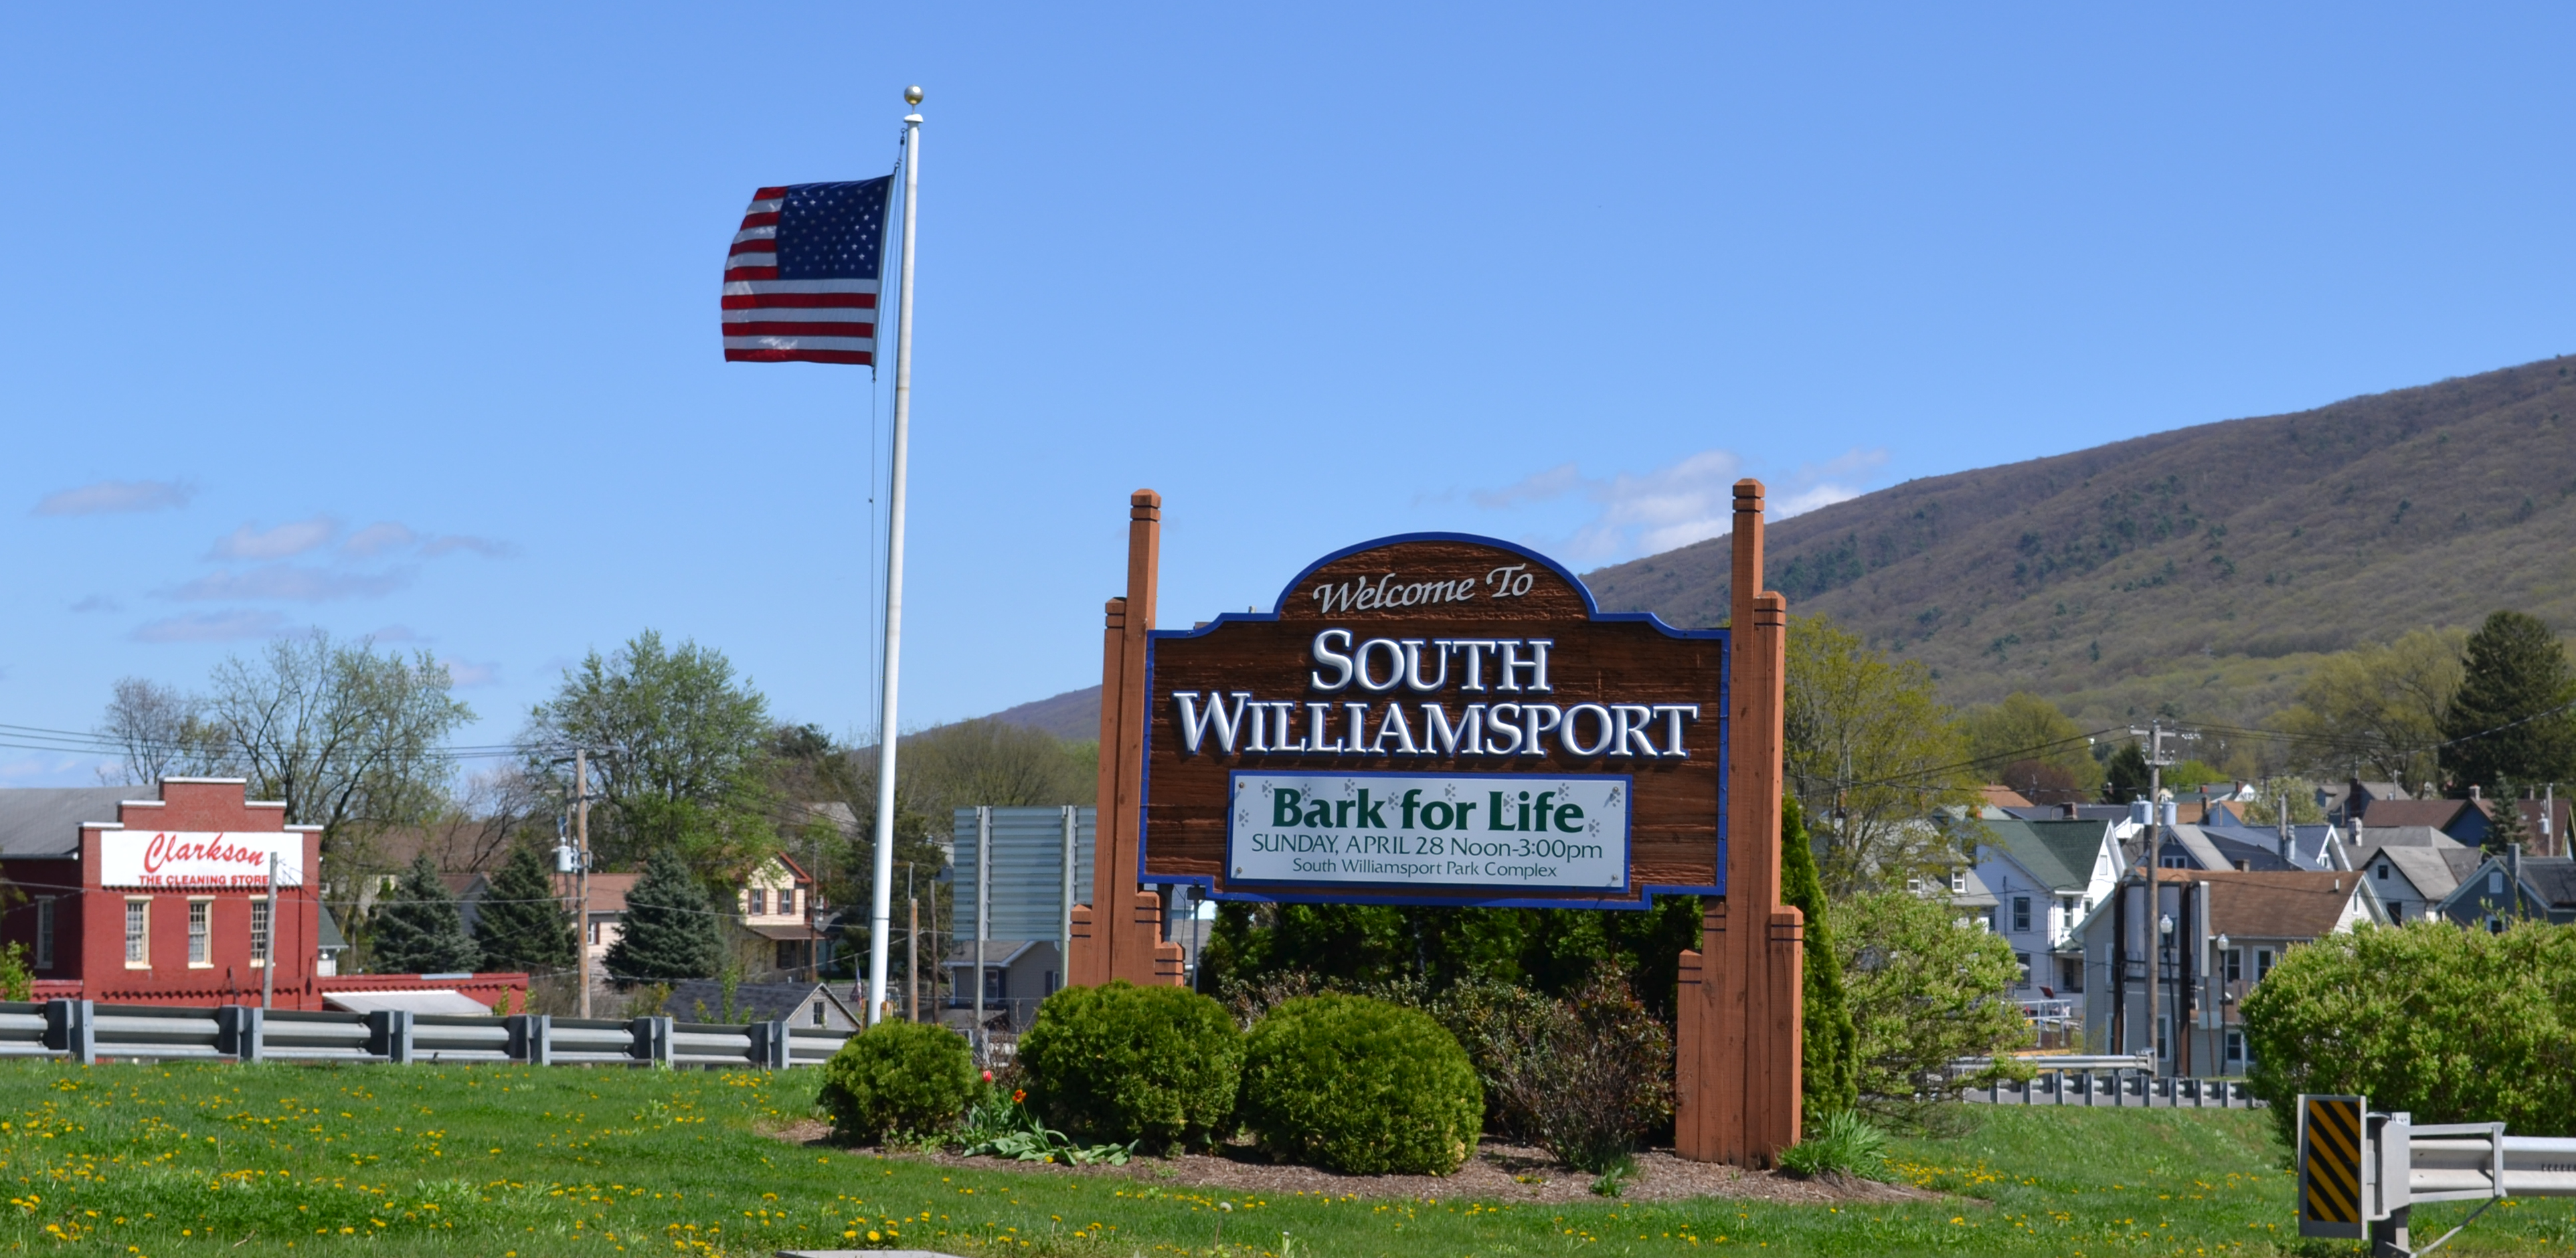 Welcome to South Williamsport sign with American flag